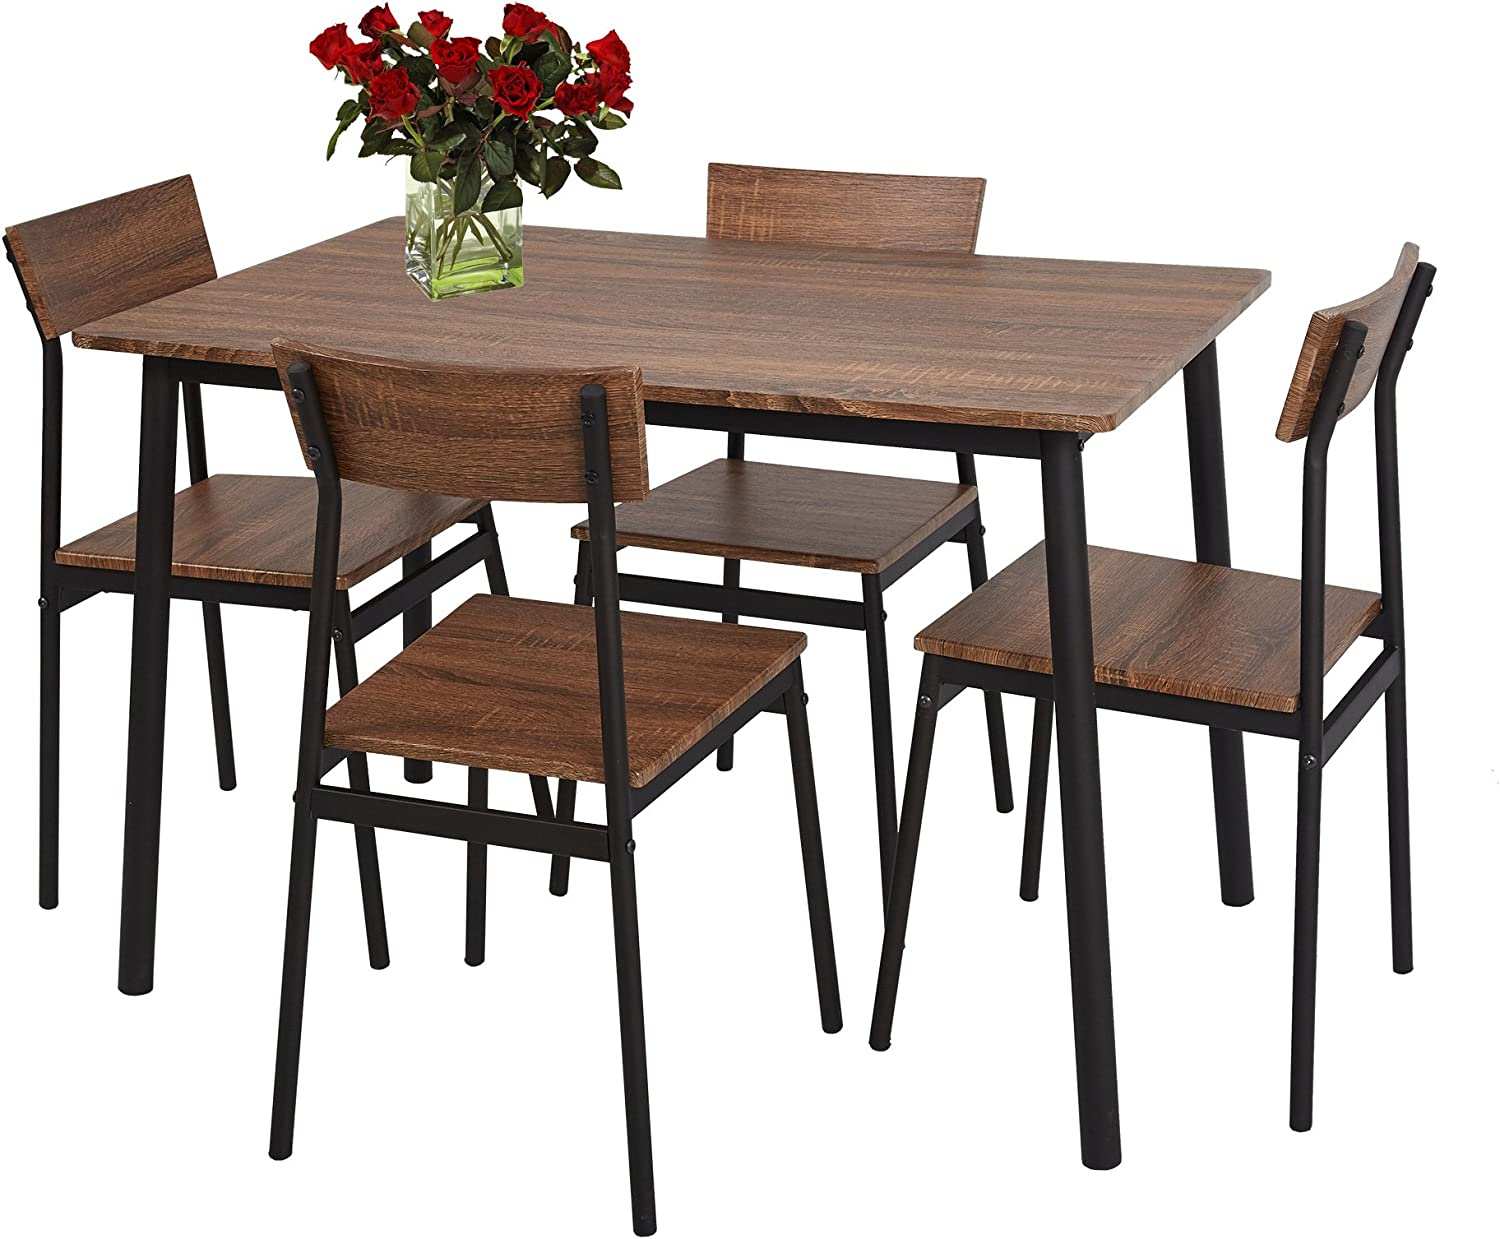 Rustic Wooden Kitchen Table And Chairs, Dining Room Sets 4 Chairs